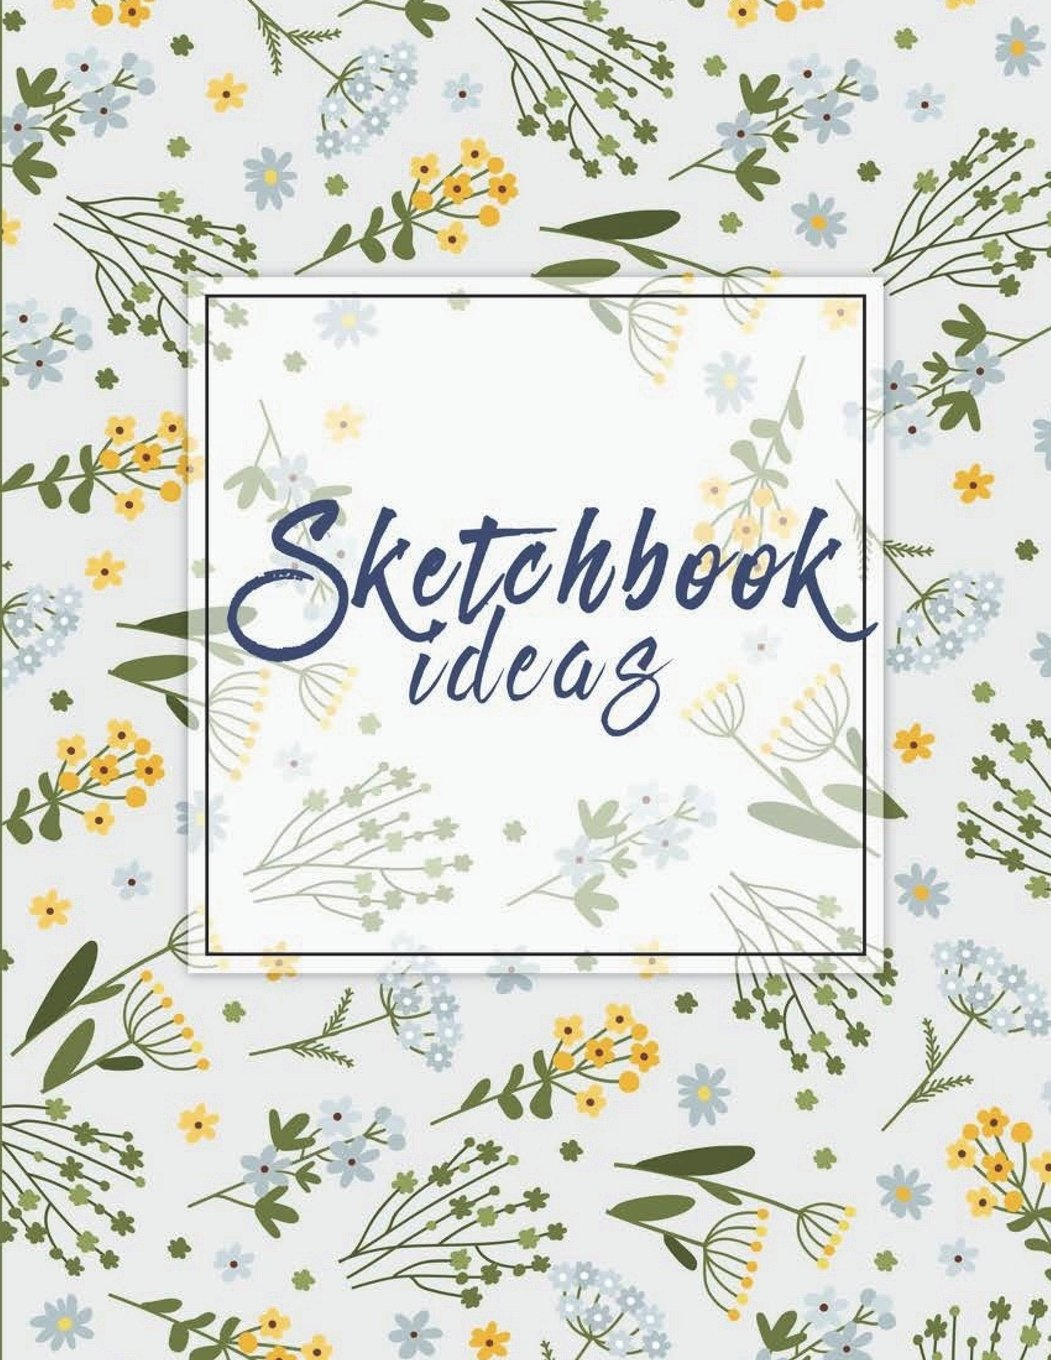 Sketchbook ideas A Journal With Blank Paper For Drawing